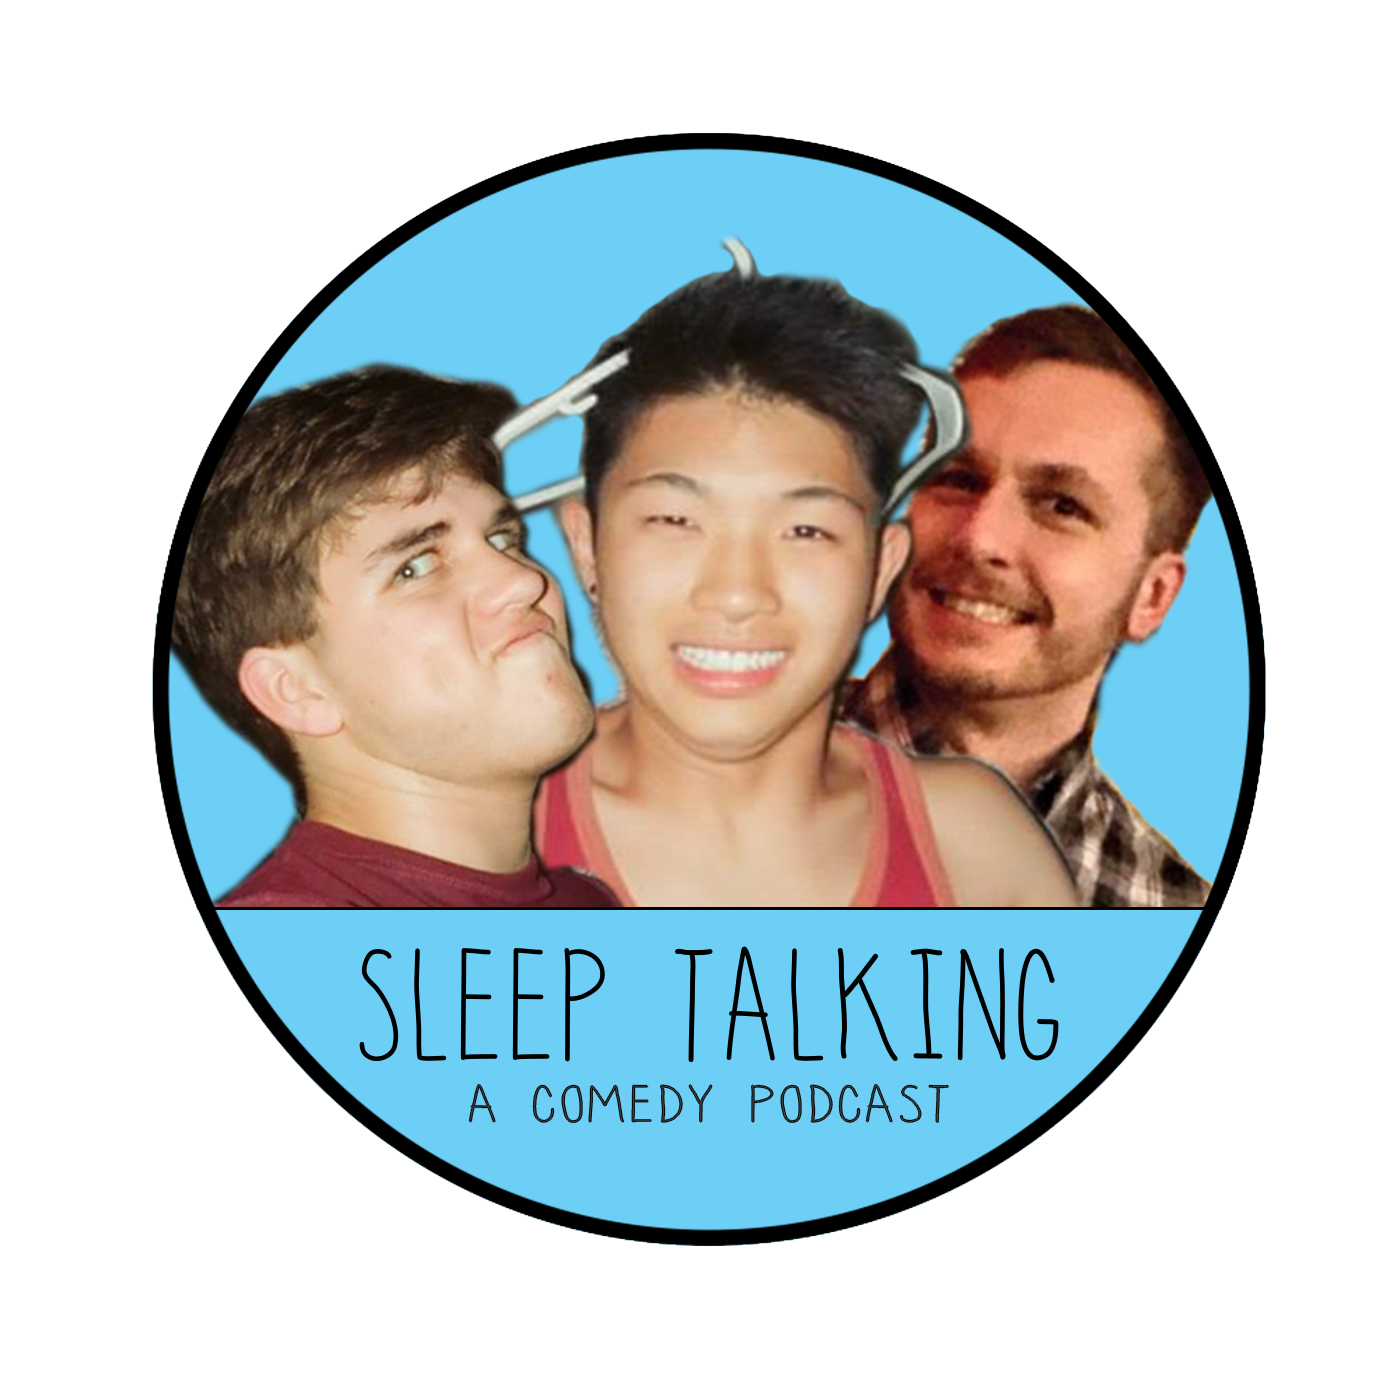 Sleep Talking - A Comedy Podcast